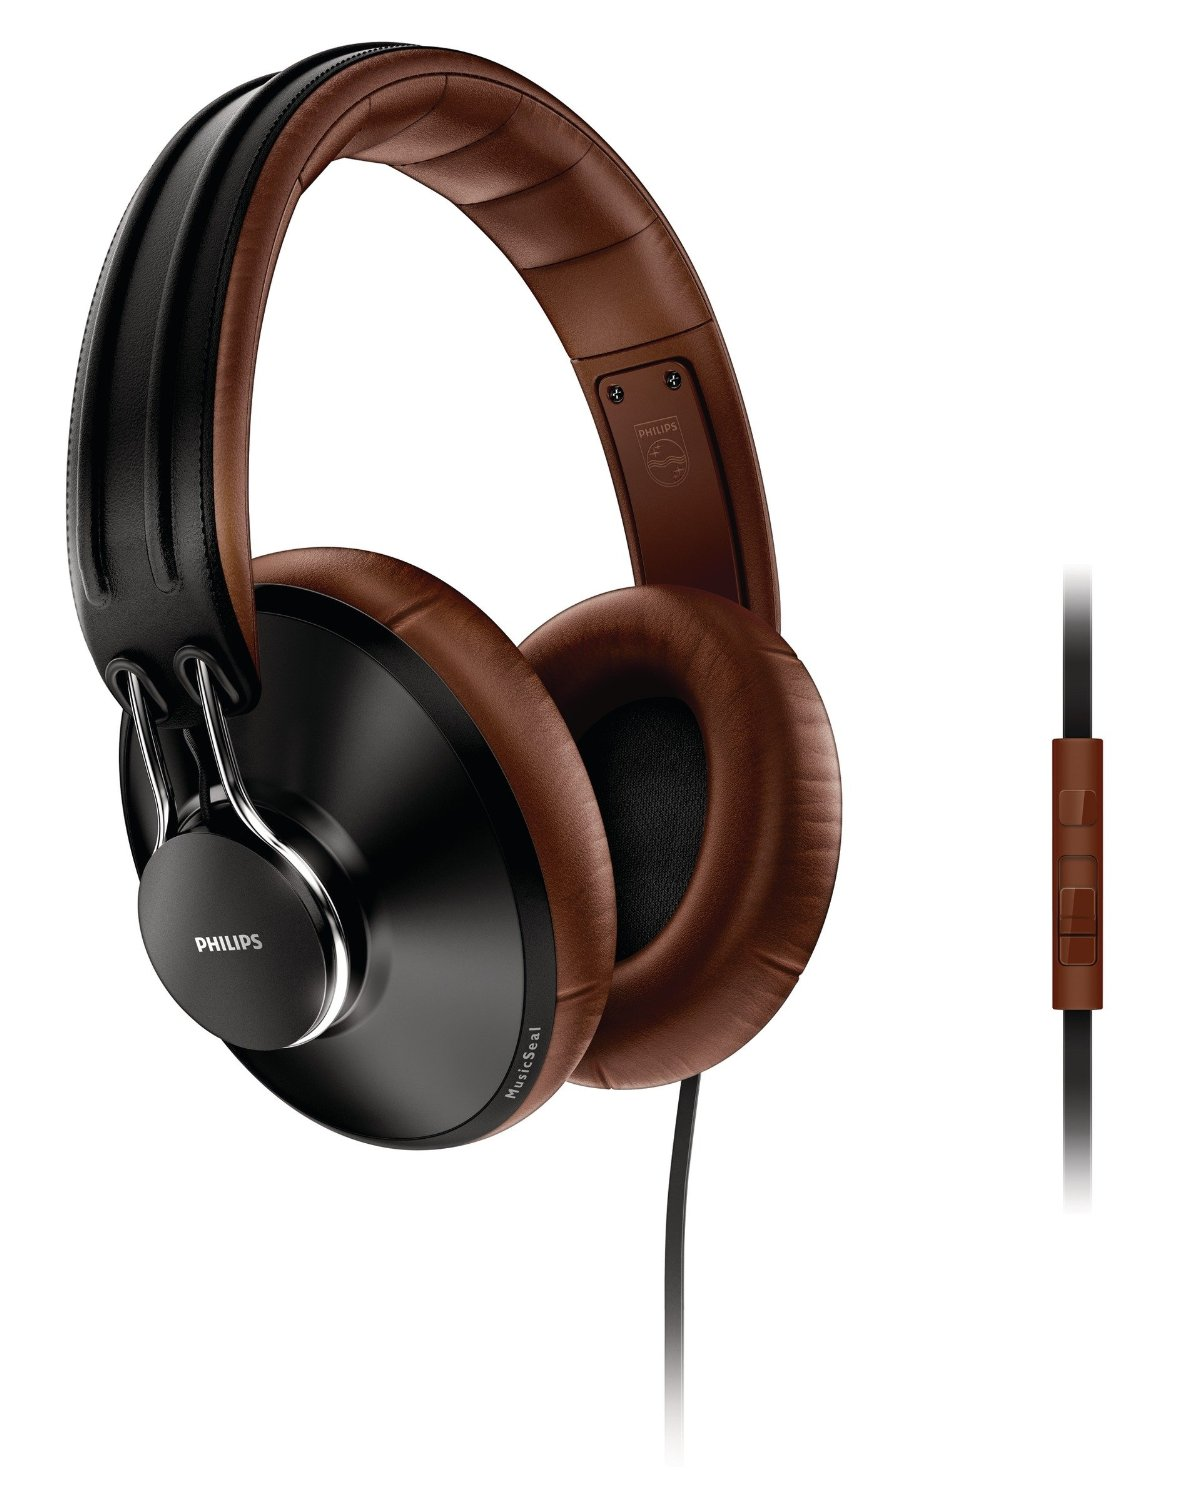 creative Headphone design and concept 4